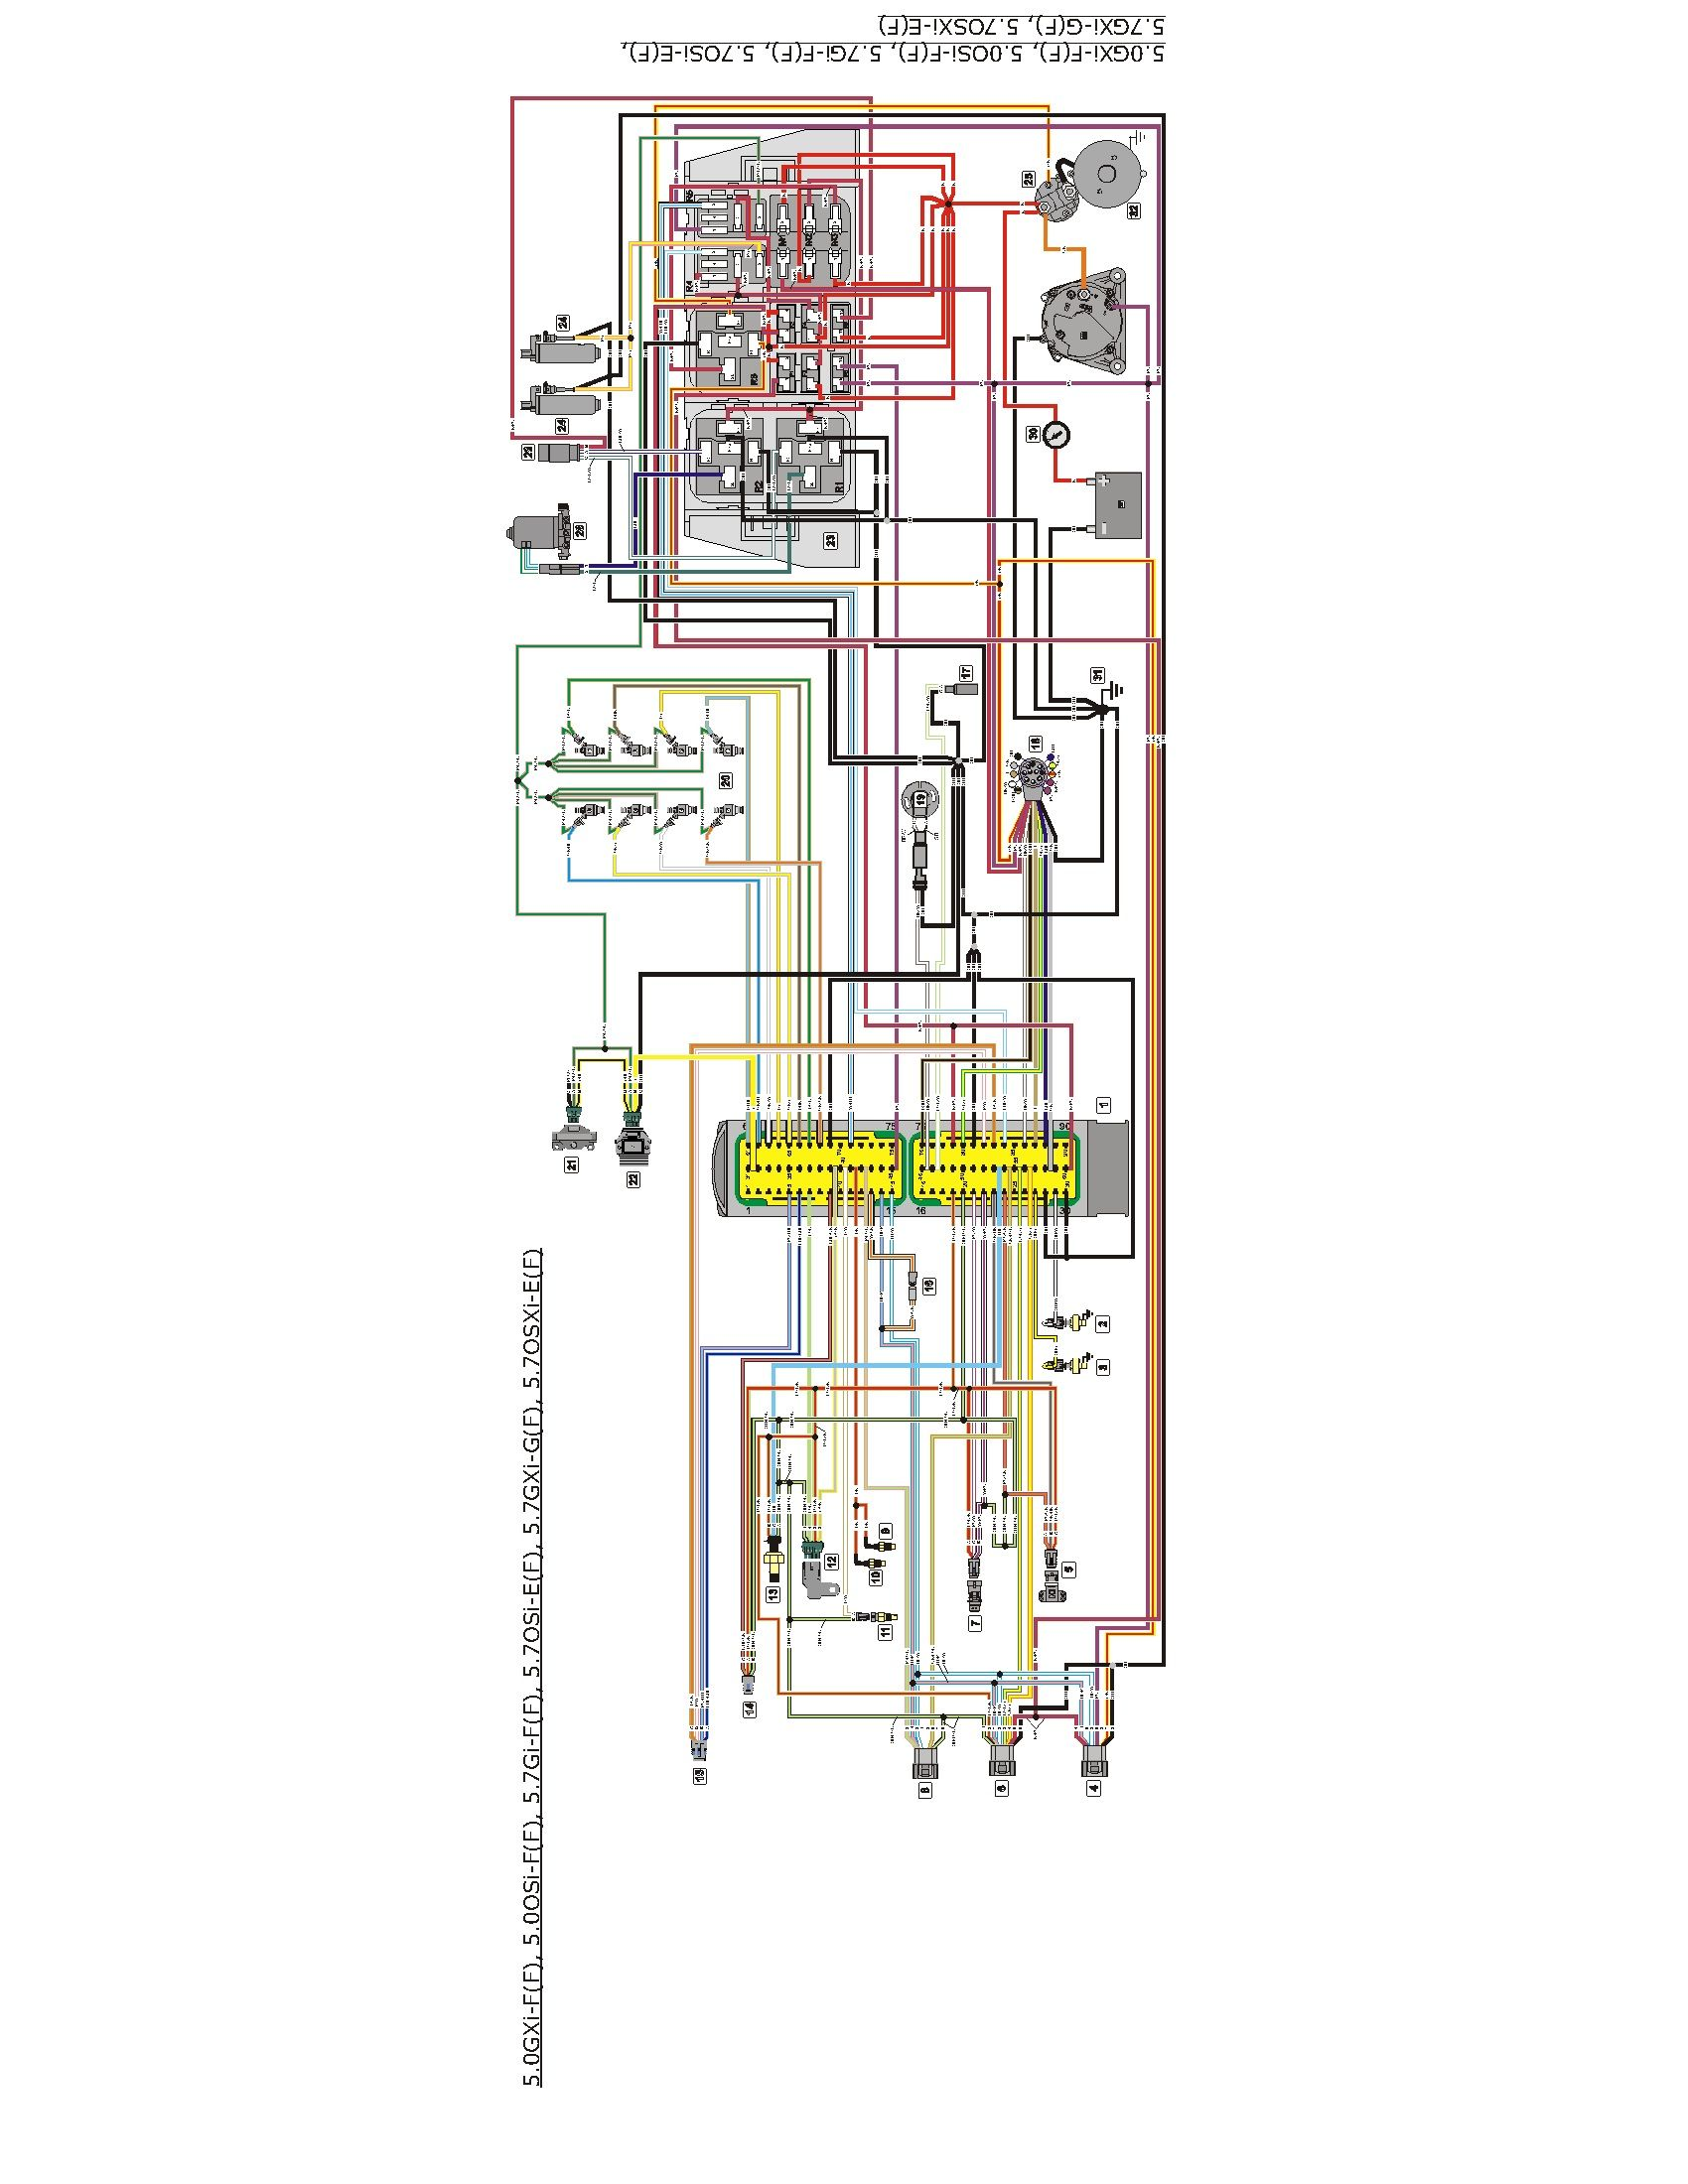 hight resolution of volvo penta 5 7 engine wiring diagram mercury outboard boat engine home design boats